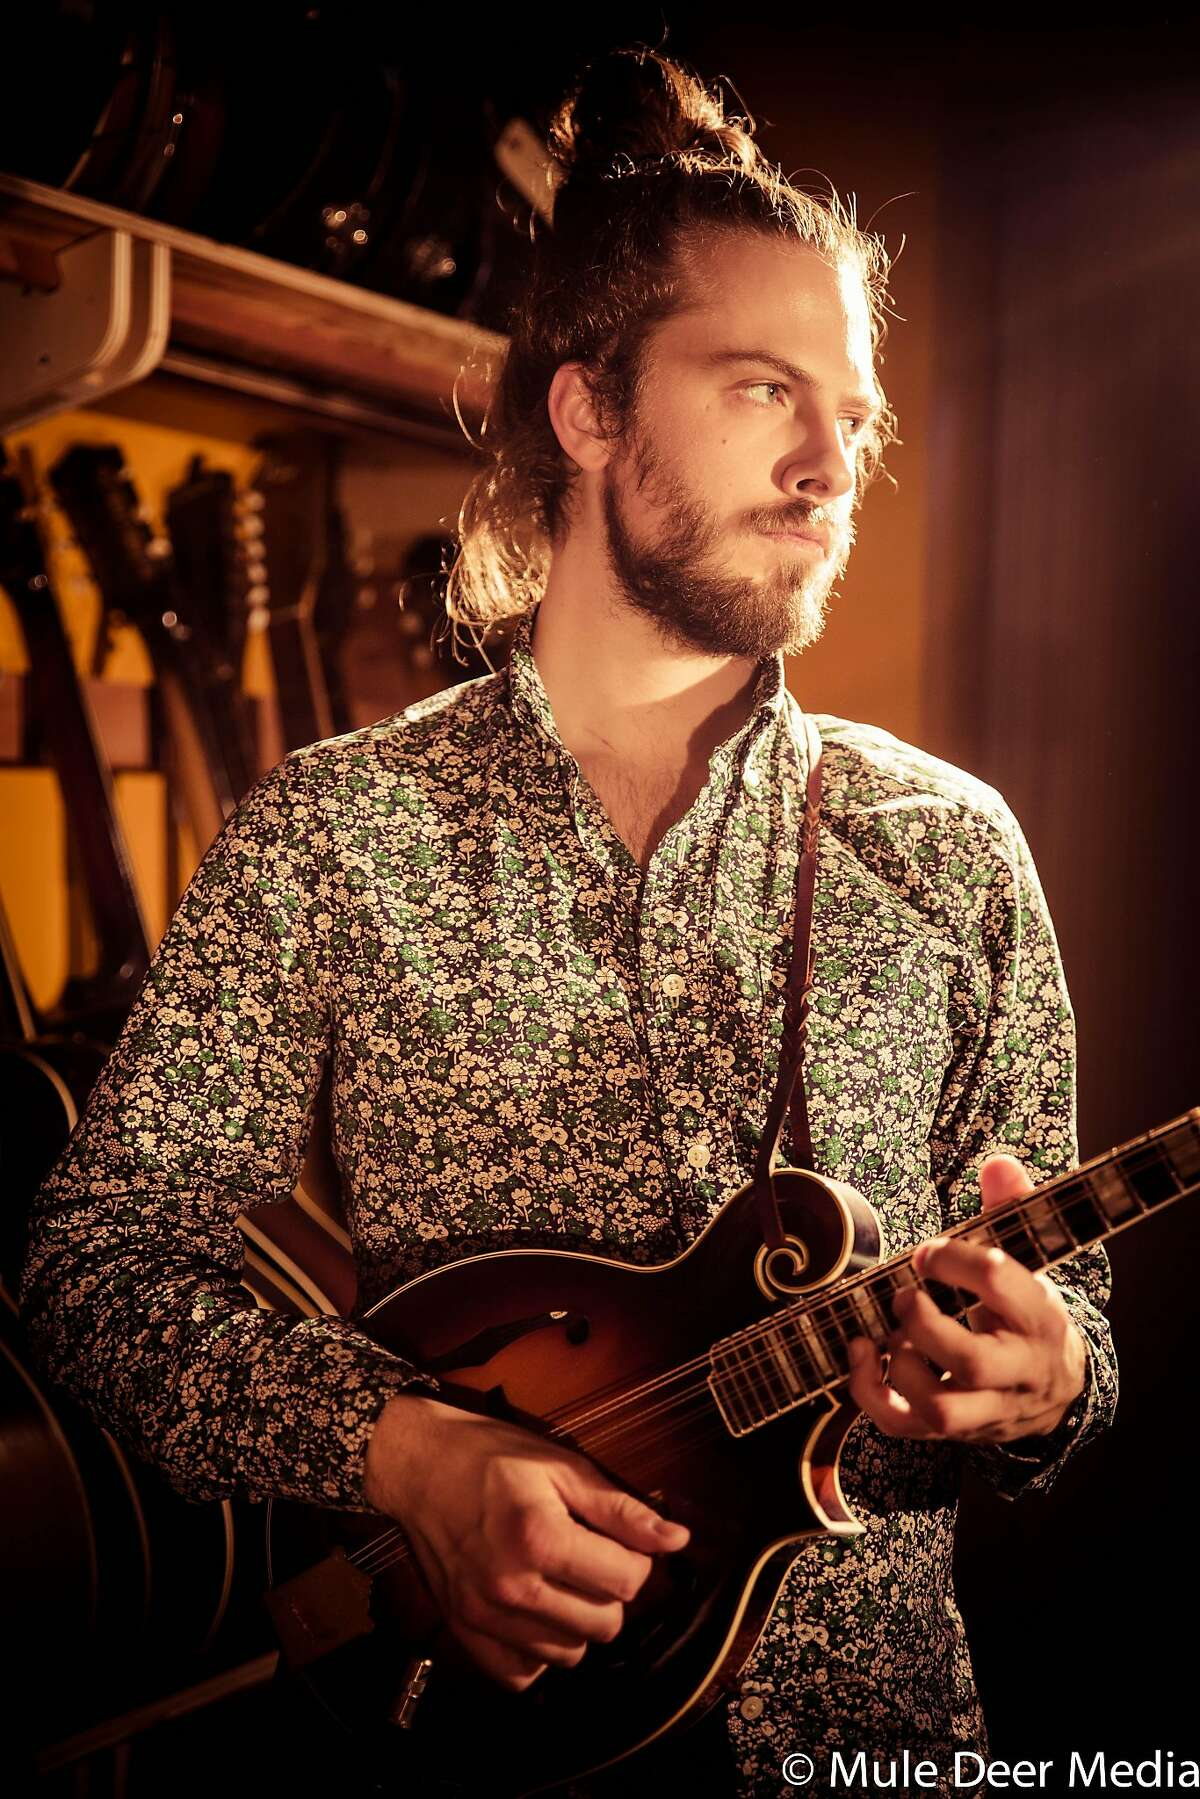 Jacob Jolliff of the Jacob Jolliff Band plays Neck of the Woods in San Francisco on Saturday, Feb. 17 and at Cafe Stritch in San Jose as part of the San Jose Jazz Winter Fest on Sunday, Feb. 18.